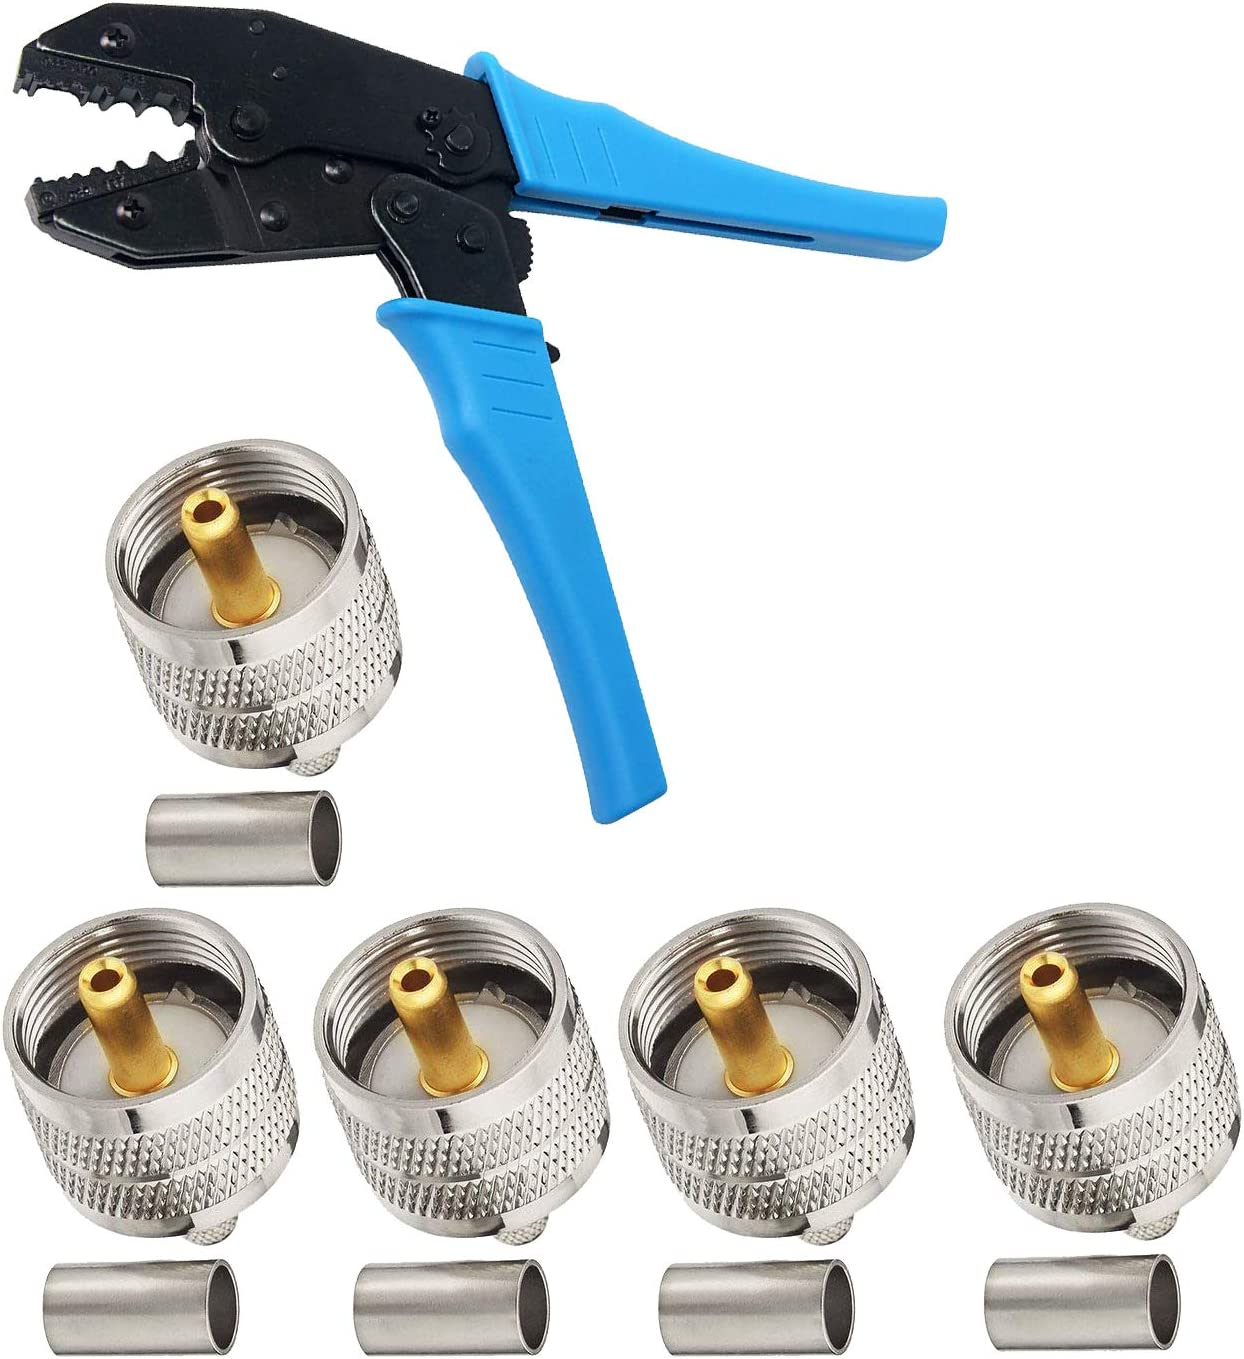 200 59 142 HIFROM Coax RF Connector Crimping Tool with 5pcs BNC Plug Crimp Connectors for RG-58 240 Heavy Duty 8x 62 LMR195 141